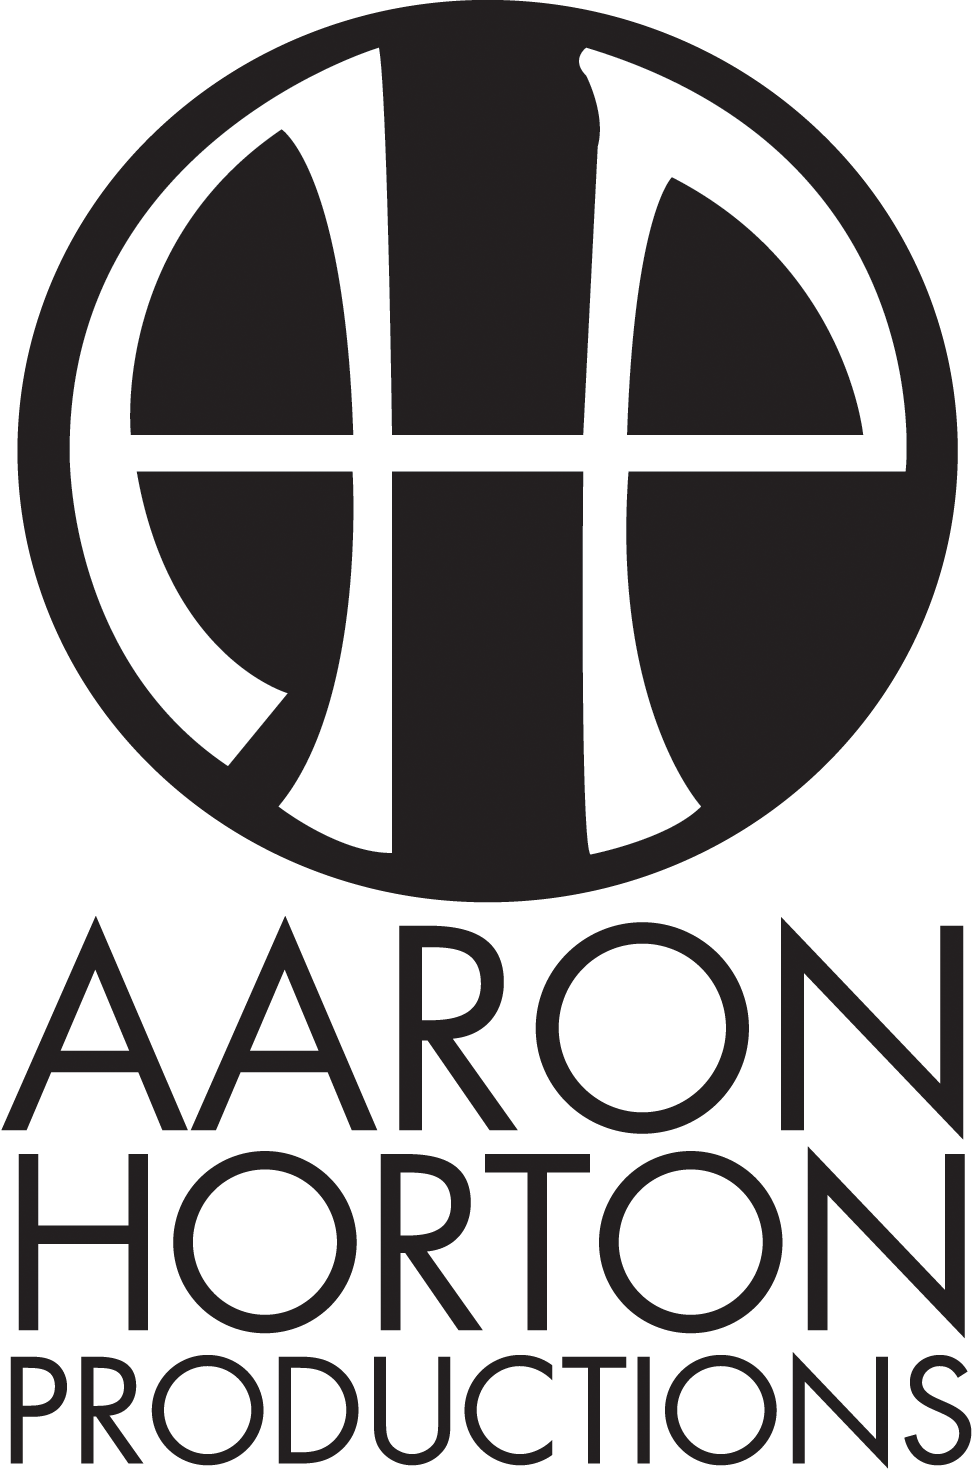 Aaron Horton Productions